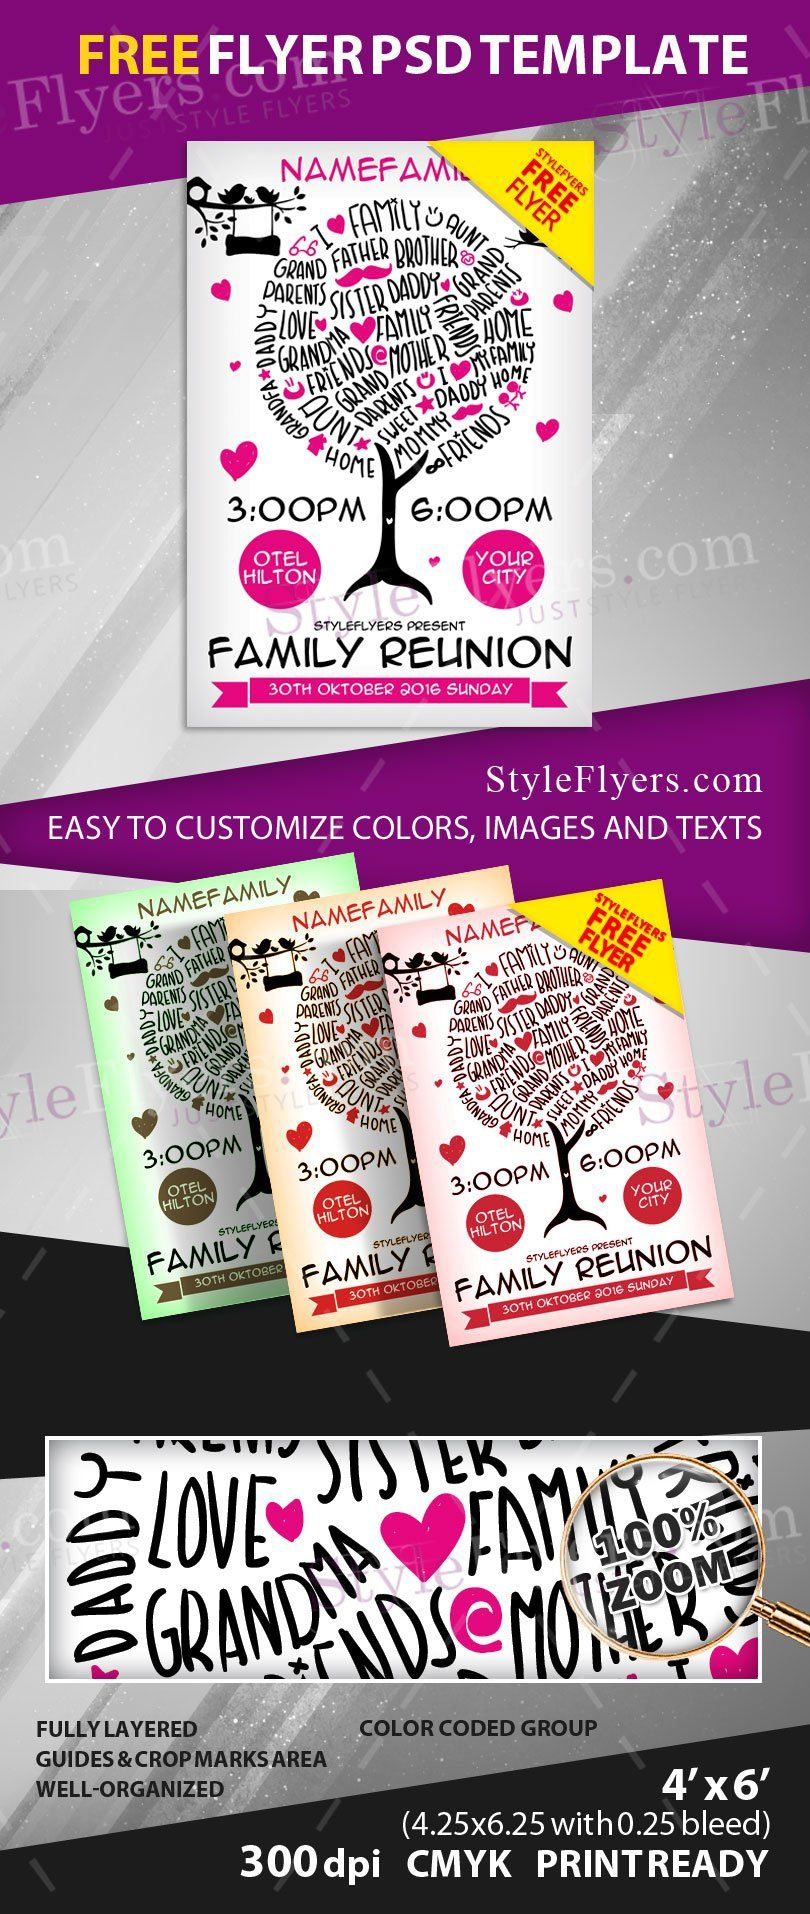 009 Unbelievable Family Reunion Flyer Template Free Concept  Downloadable Printable InvitationFull